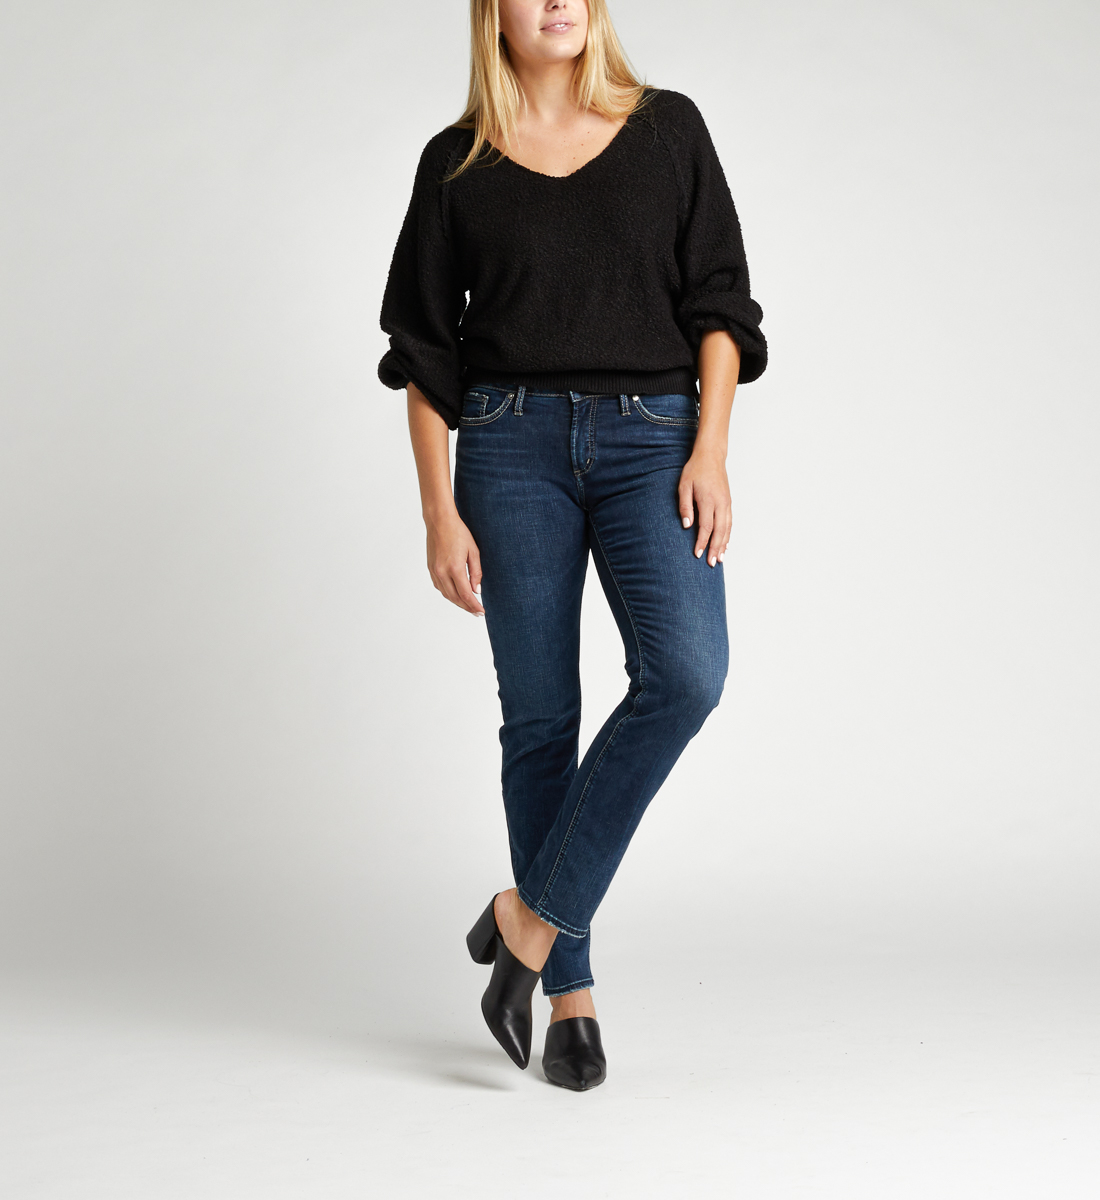 Silver Jeans Elyse Mid Rise Slim Leg Jeans